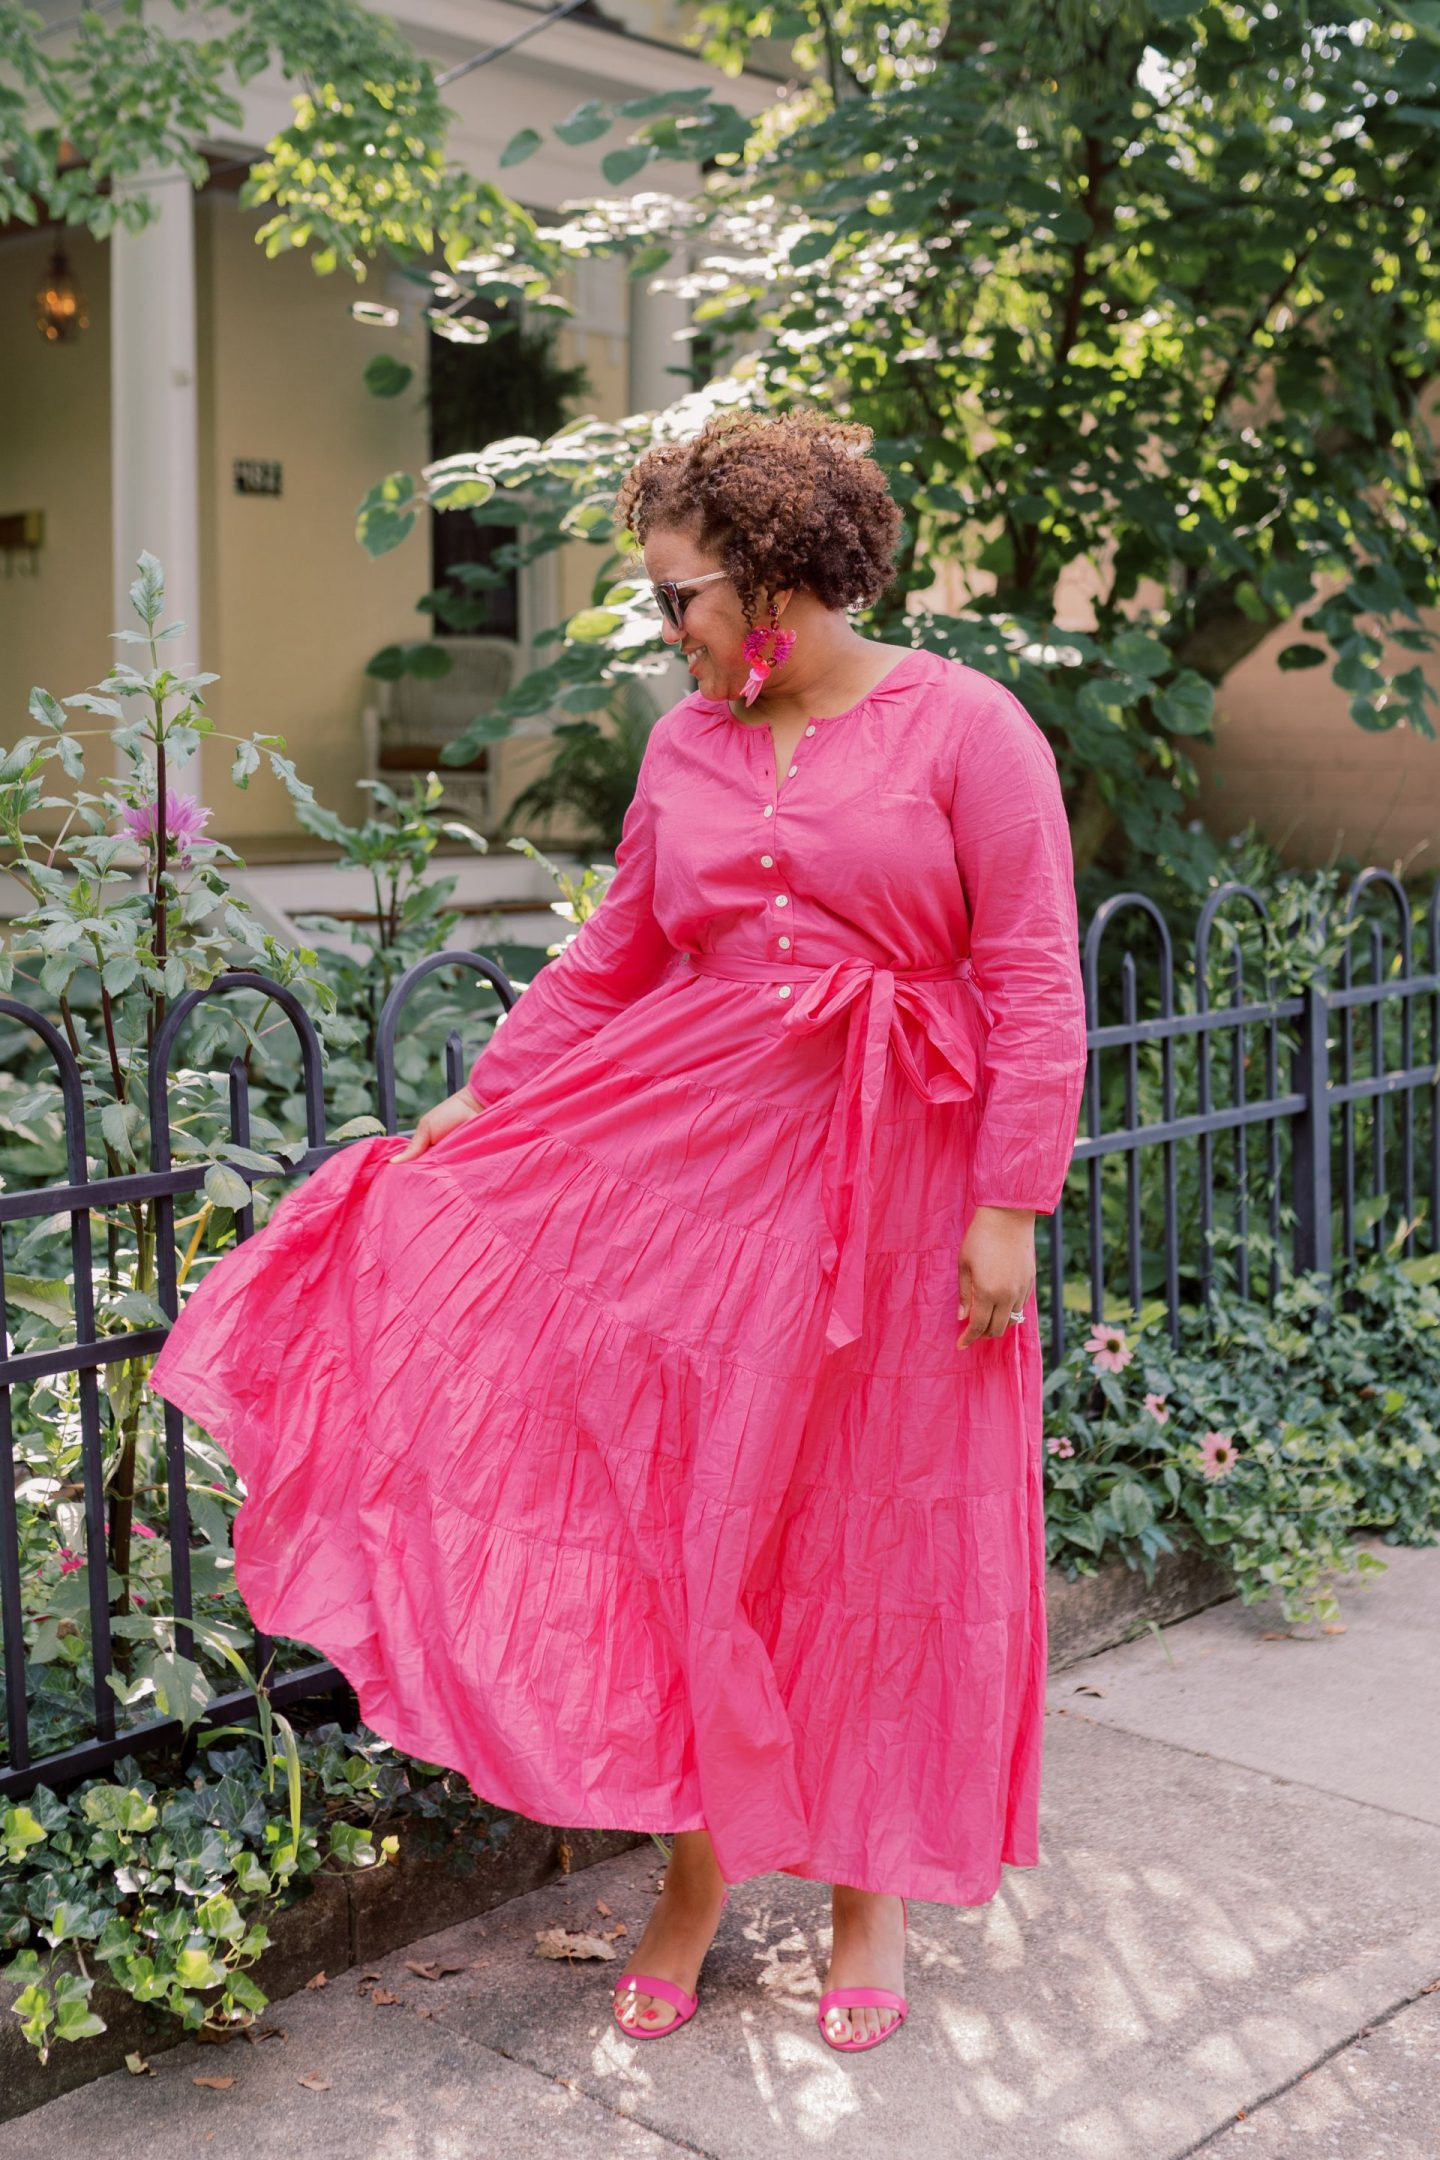 How to Wear a J Crew Maxi Dress for the weekend, tips featured by top KY fashion blogger, Really Rynetta: image of a woman wearing a pink J Crew maxi dress.